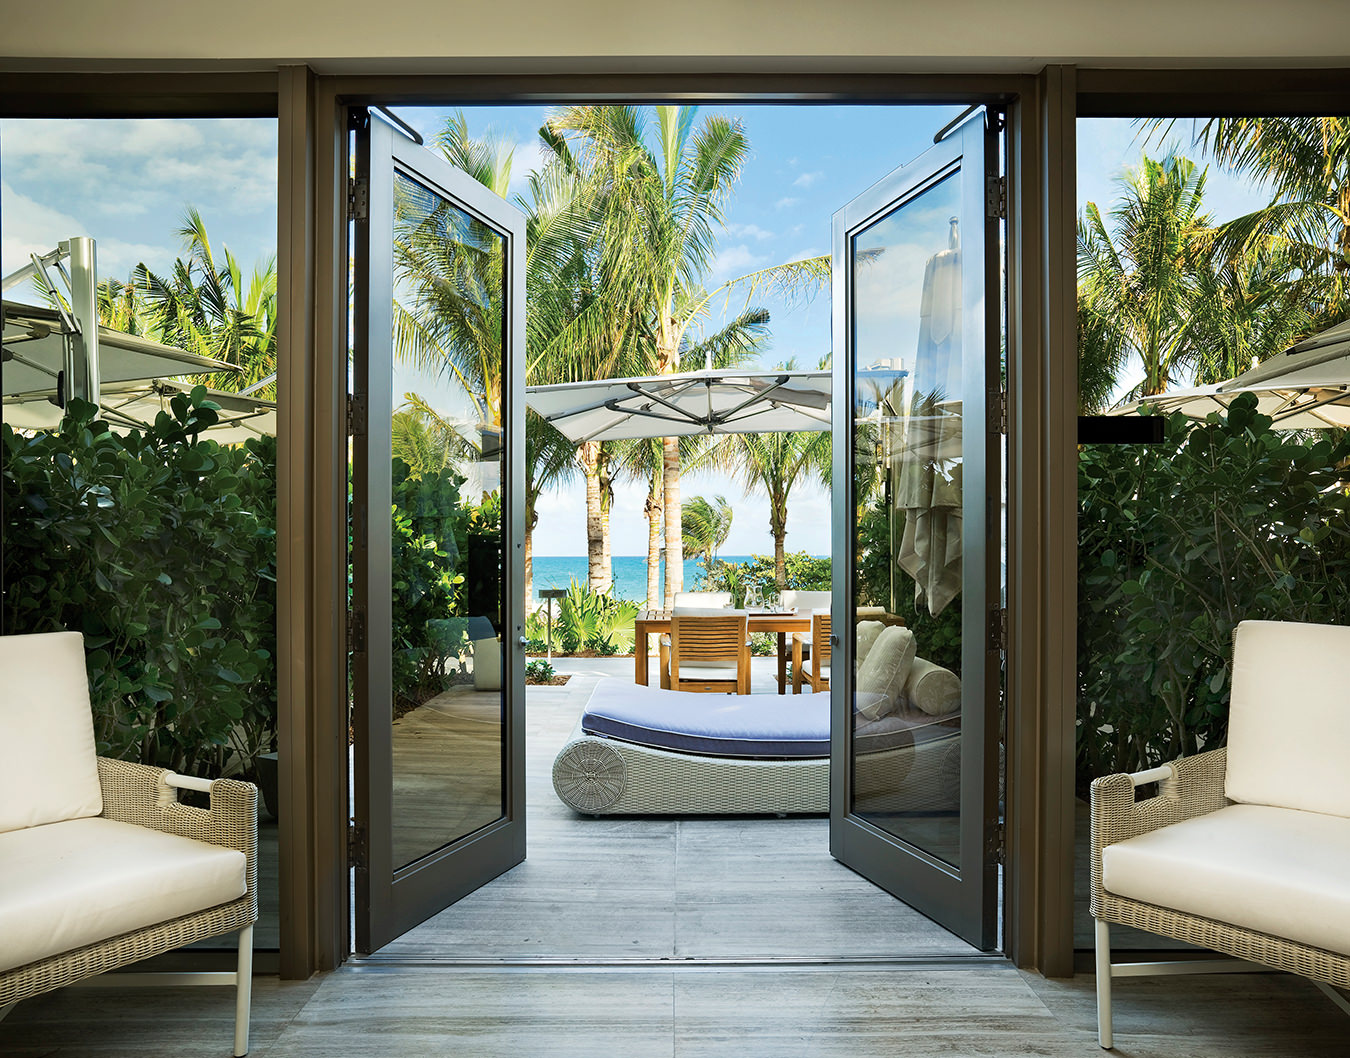 NUVO Magazine: St. Regis Bal Harbour Resort